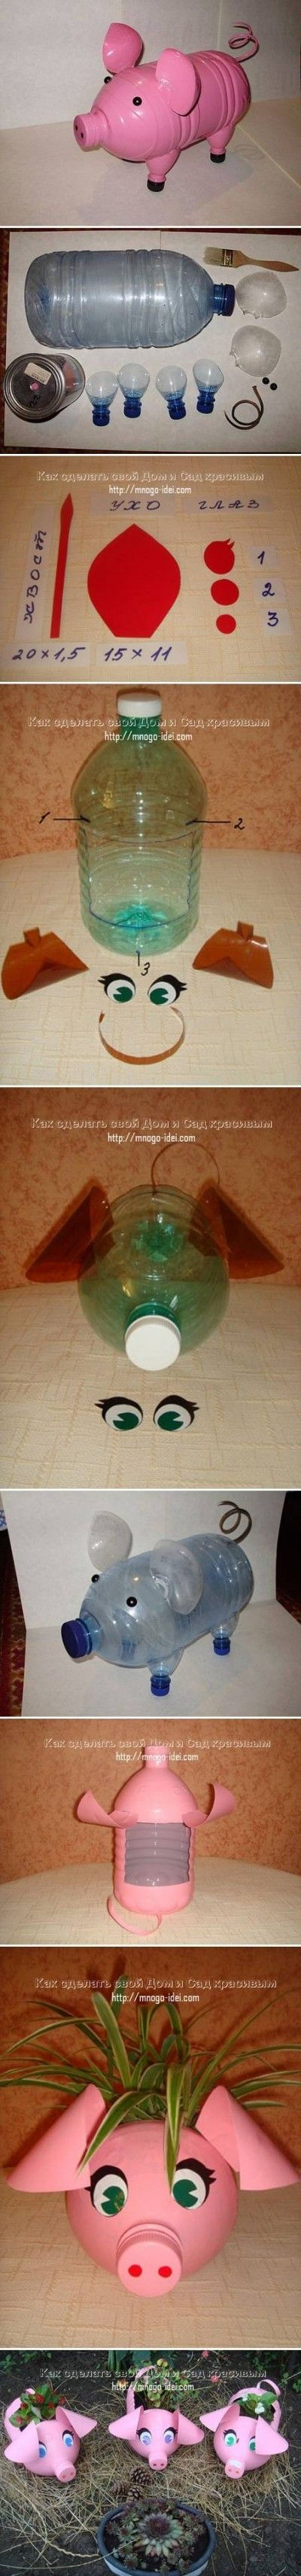 Pl Plastic Bottle Bird Feeder Instructions - 12 best recycled materials images on pinterest crafts recycled plastic bottles and recycled bottles